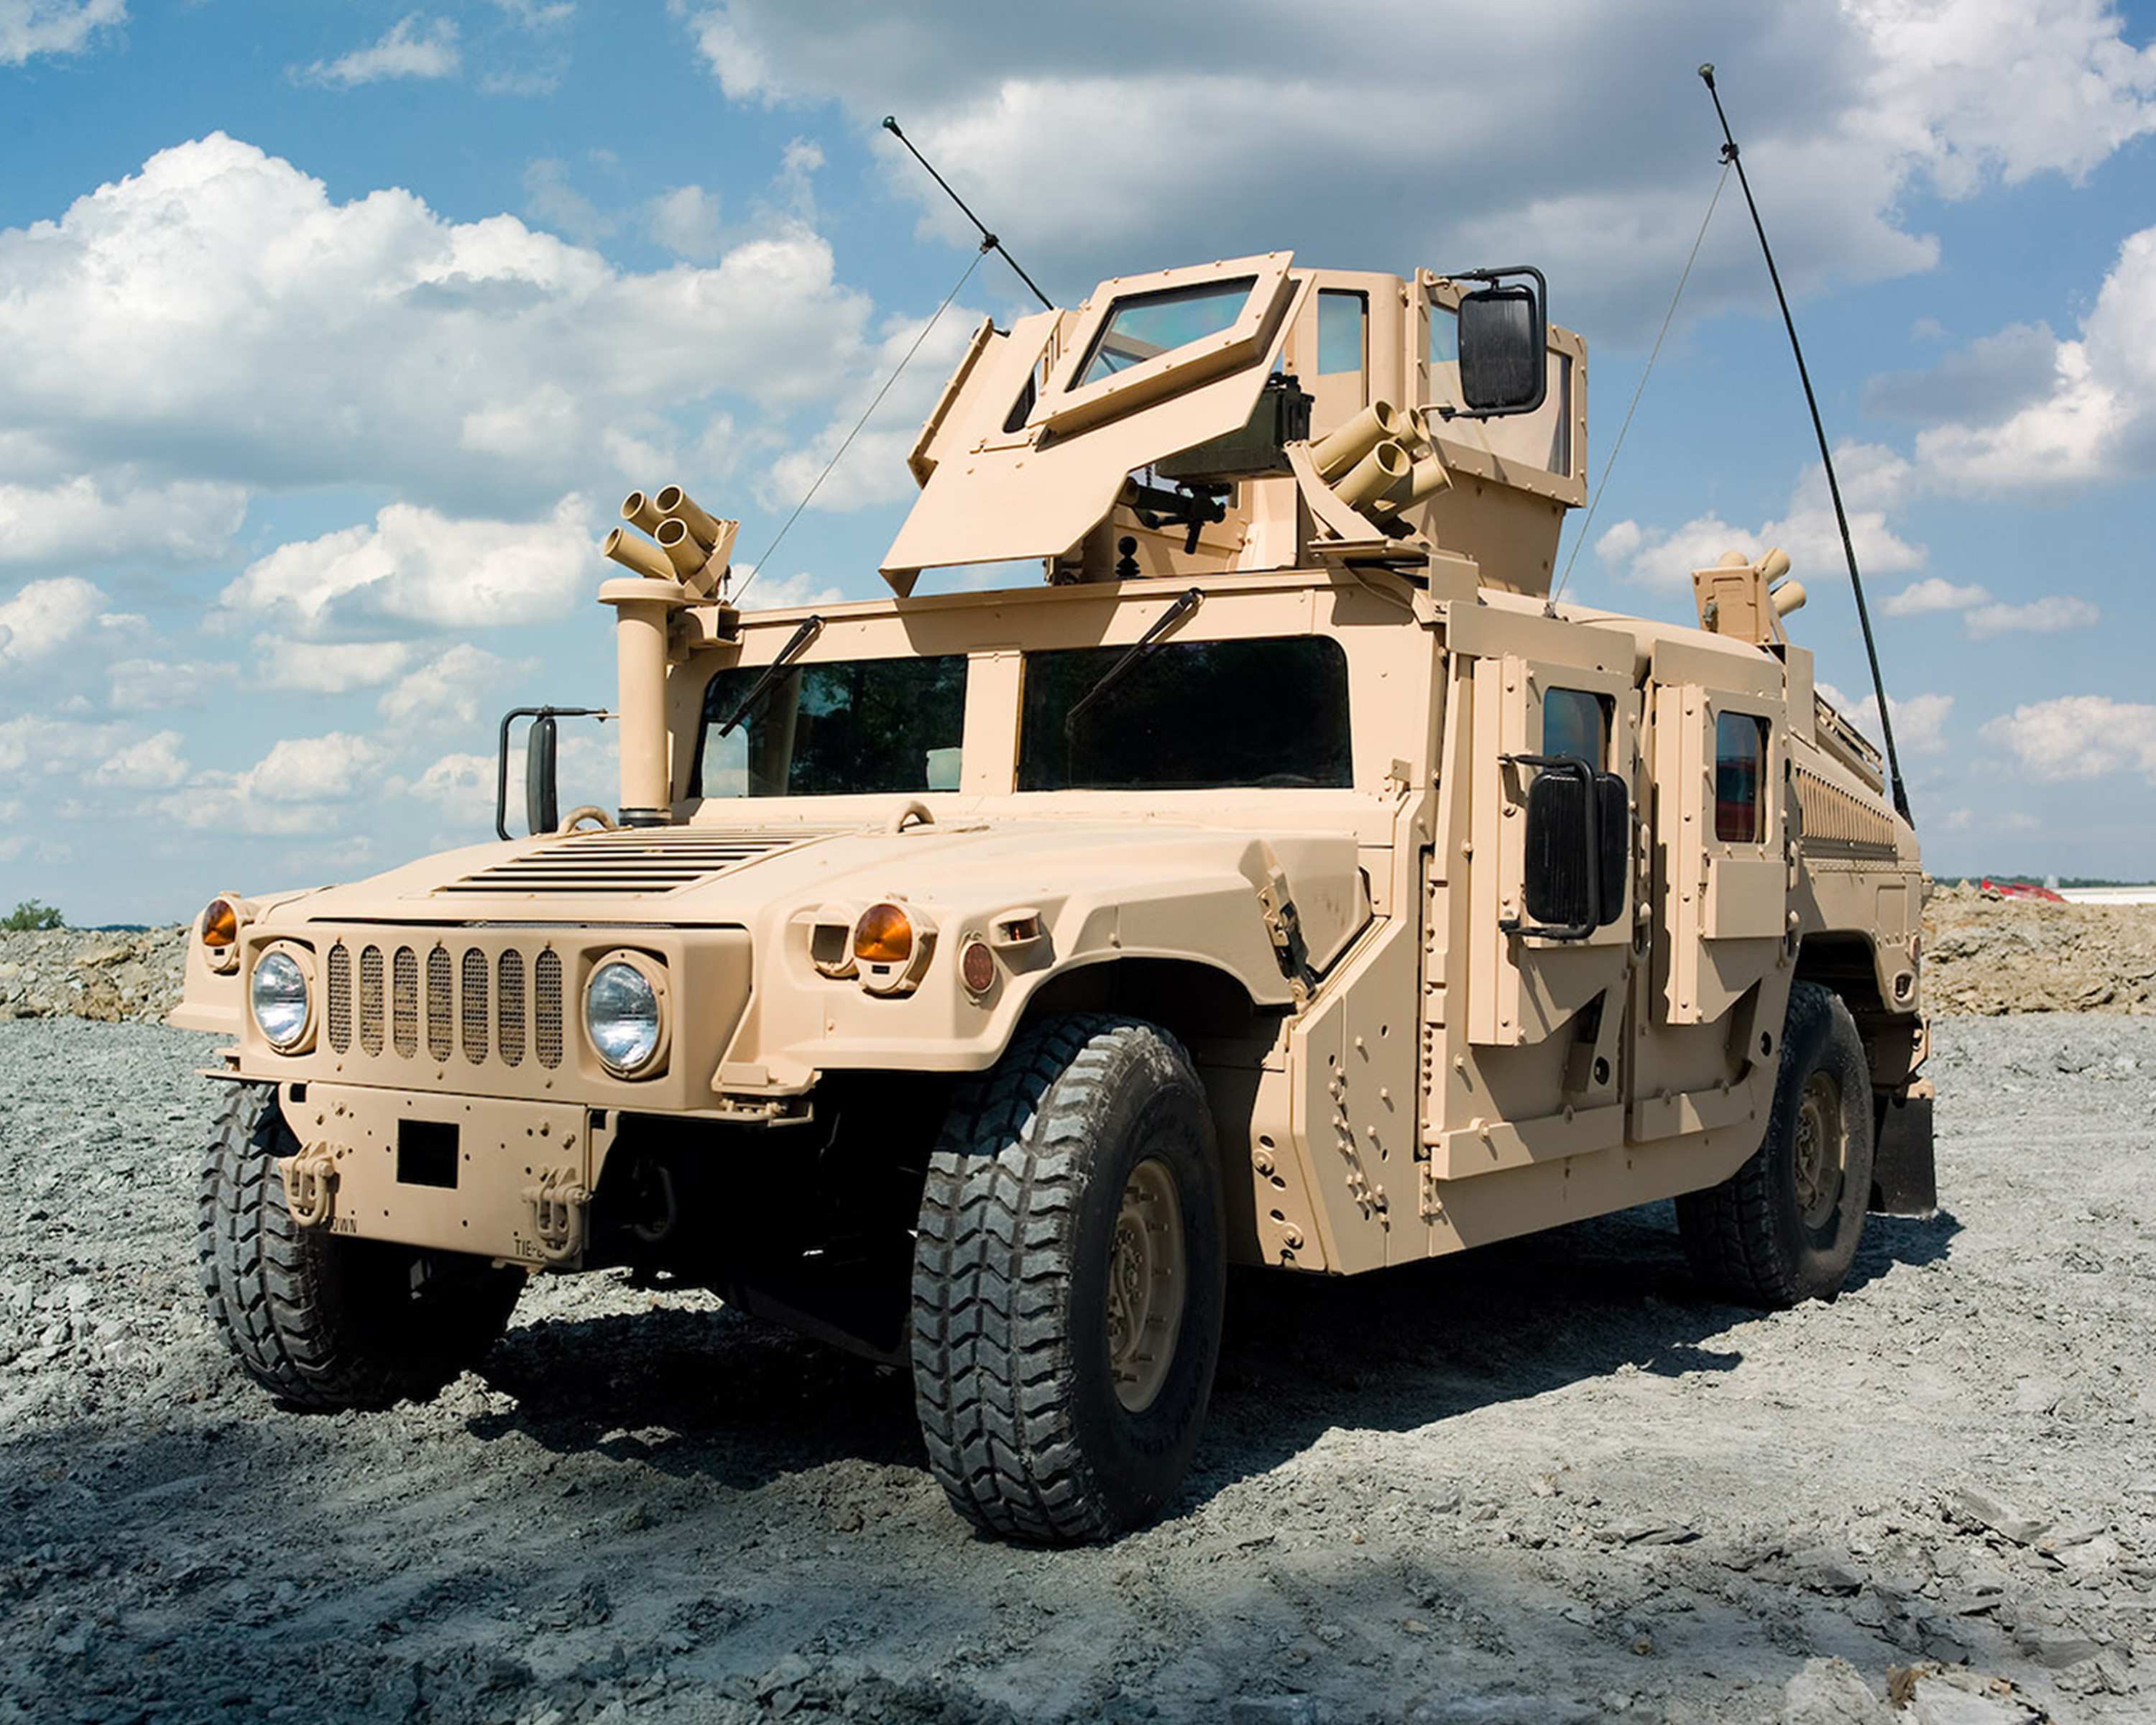 260 Military Vehicles HD Wallpapers | Backgrounds ...